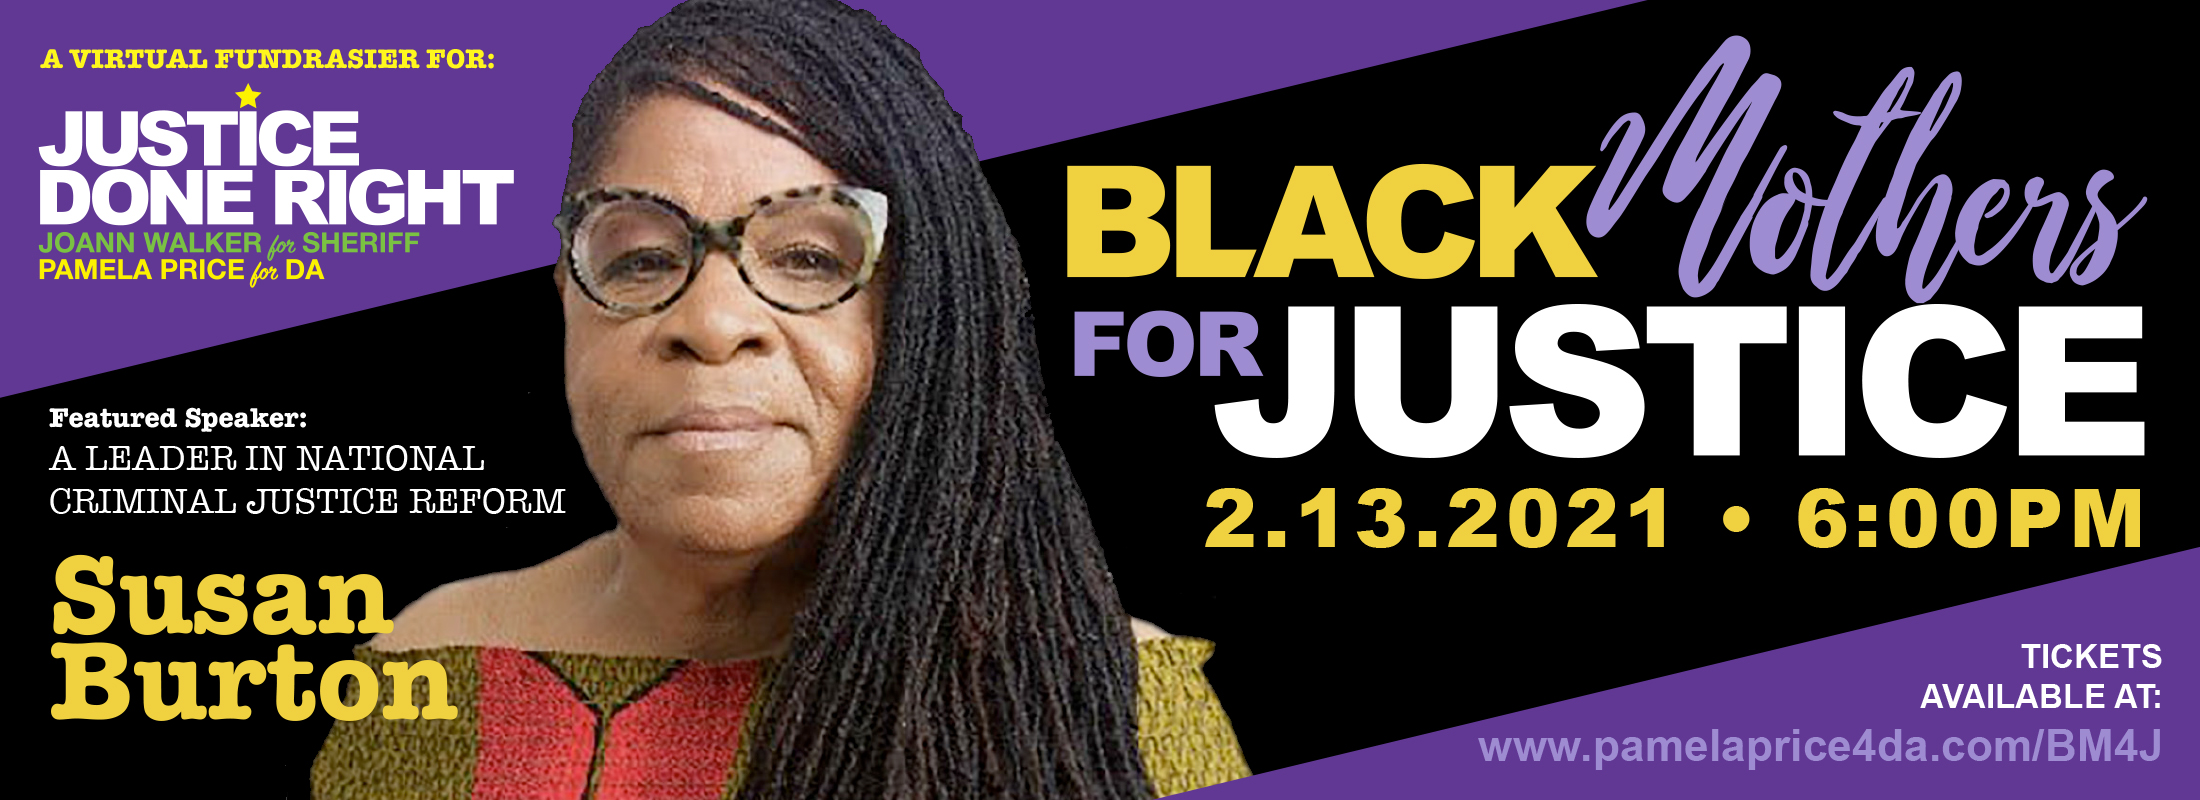 Black Mothers for Justice Banner